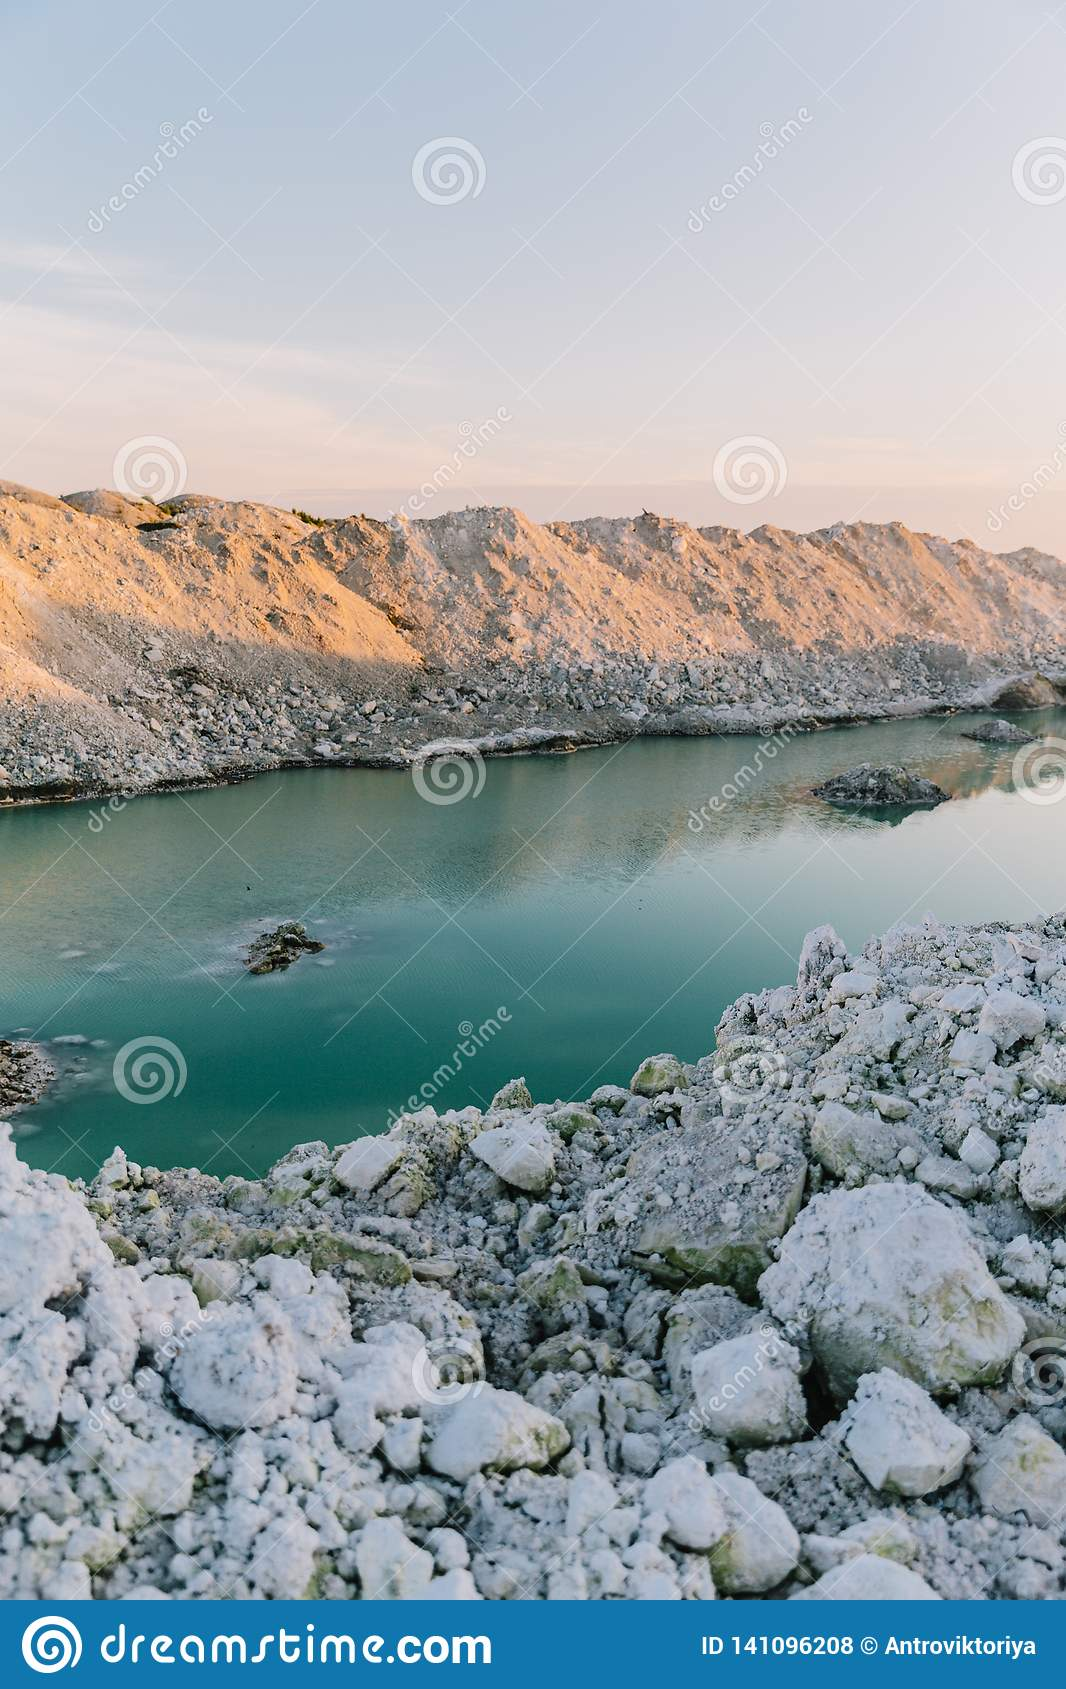 Mountain lake with emerald water at sunset